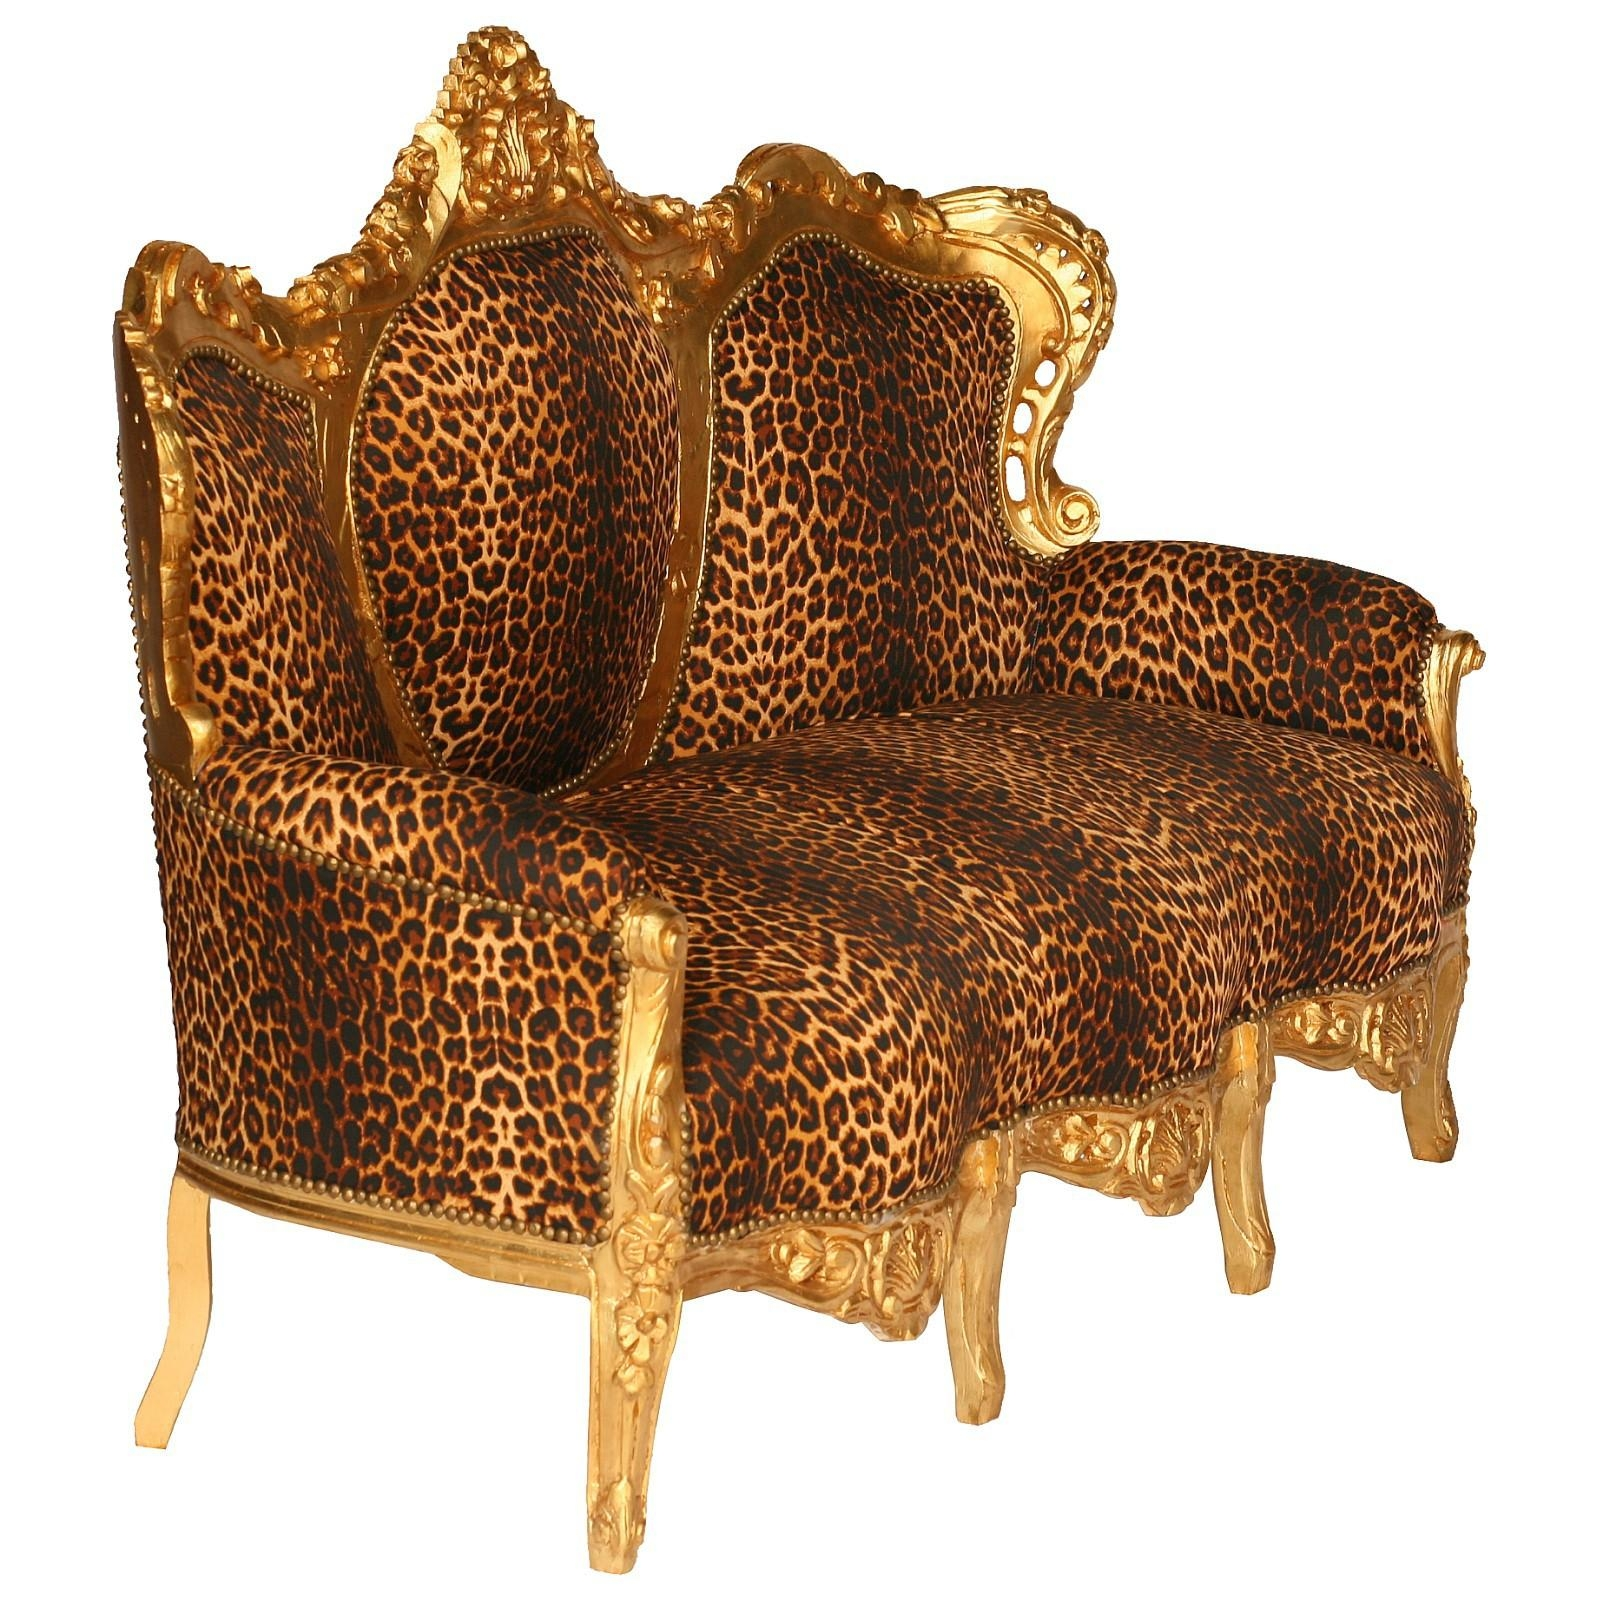 Sofas Center : Animal Print Cushions On Black Armchairs And Sofa With Regard To Animal Print Sofas (Image 16 of 20)